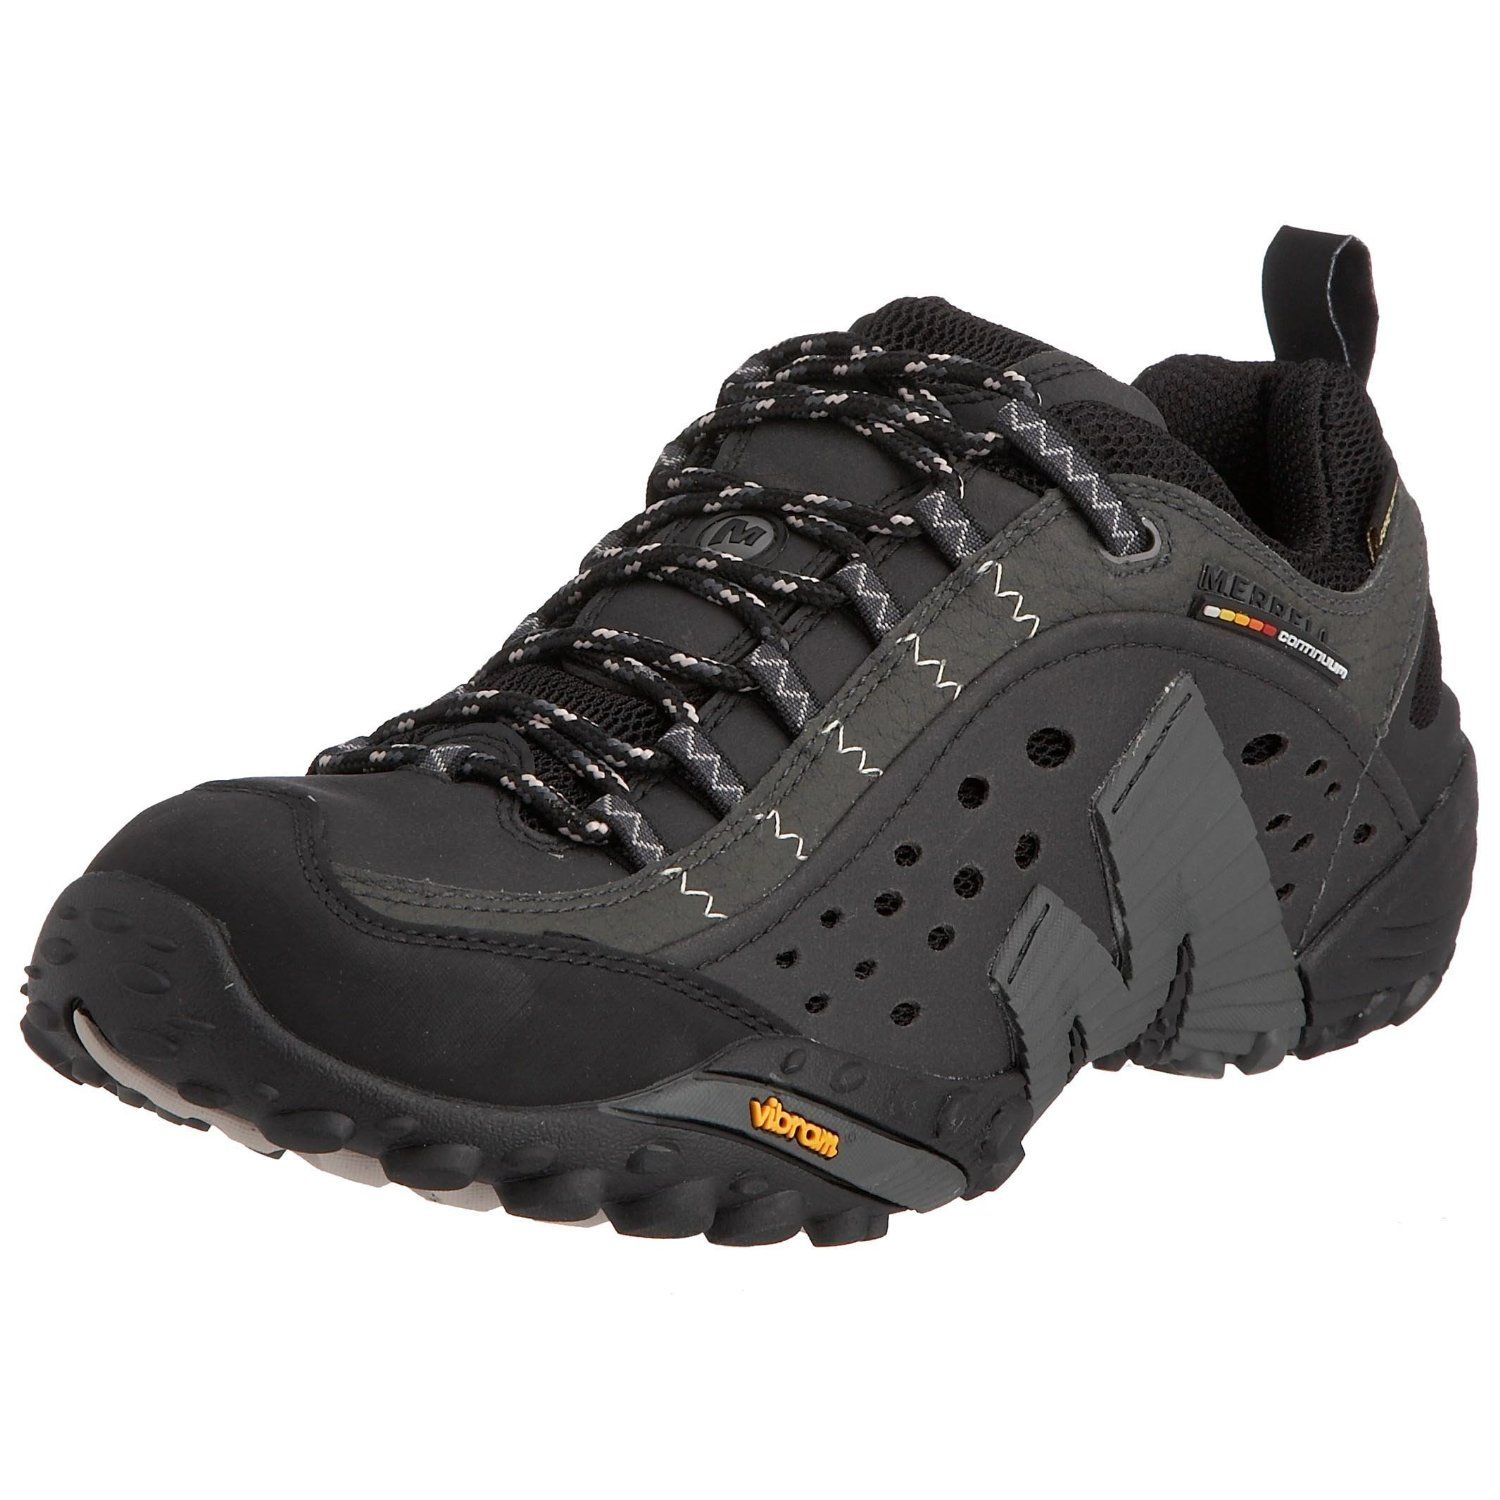 zapatos merrell el salvador uk